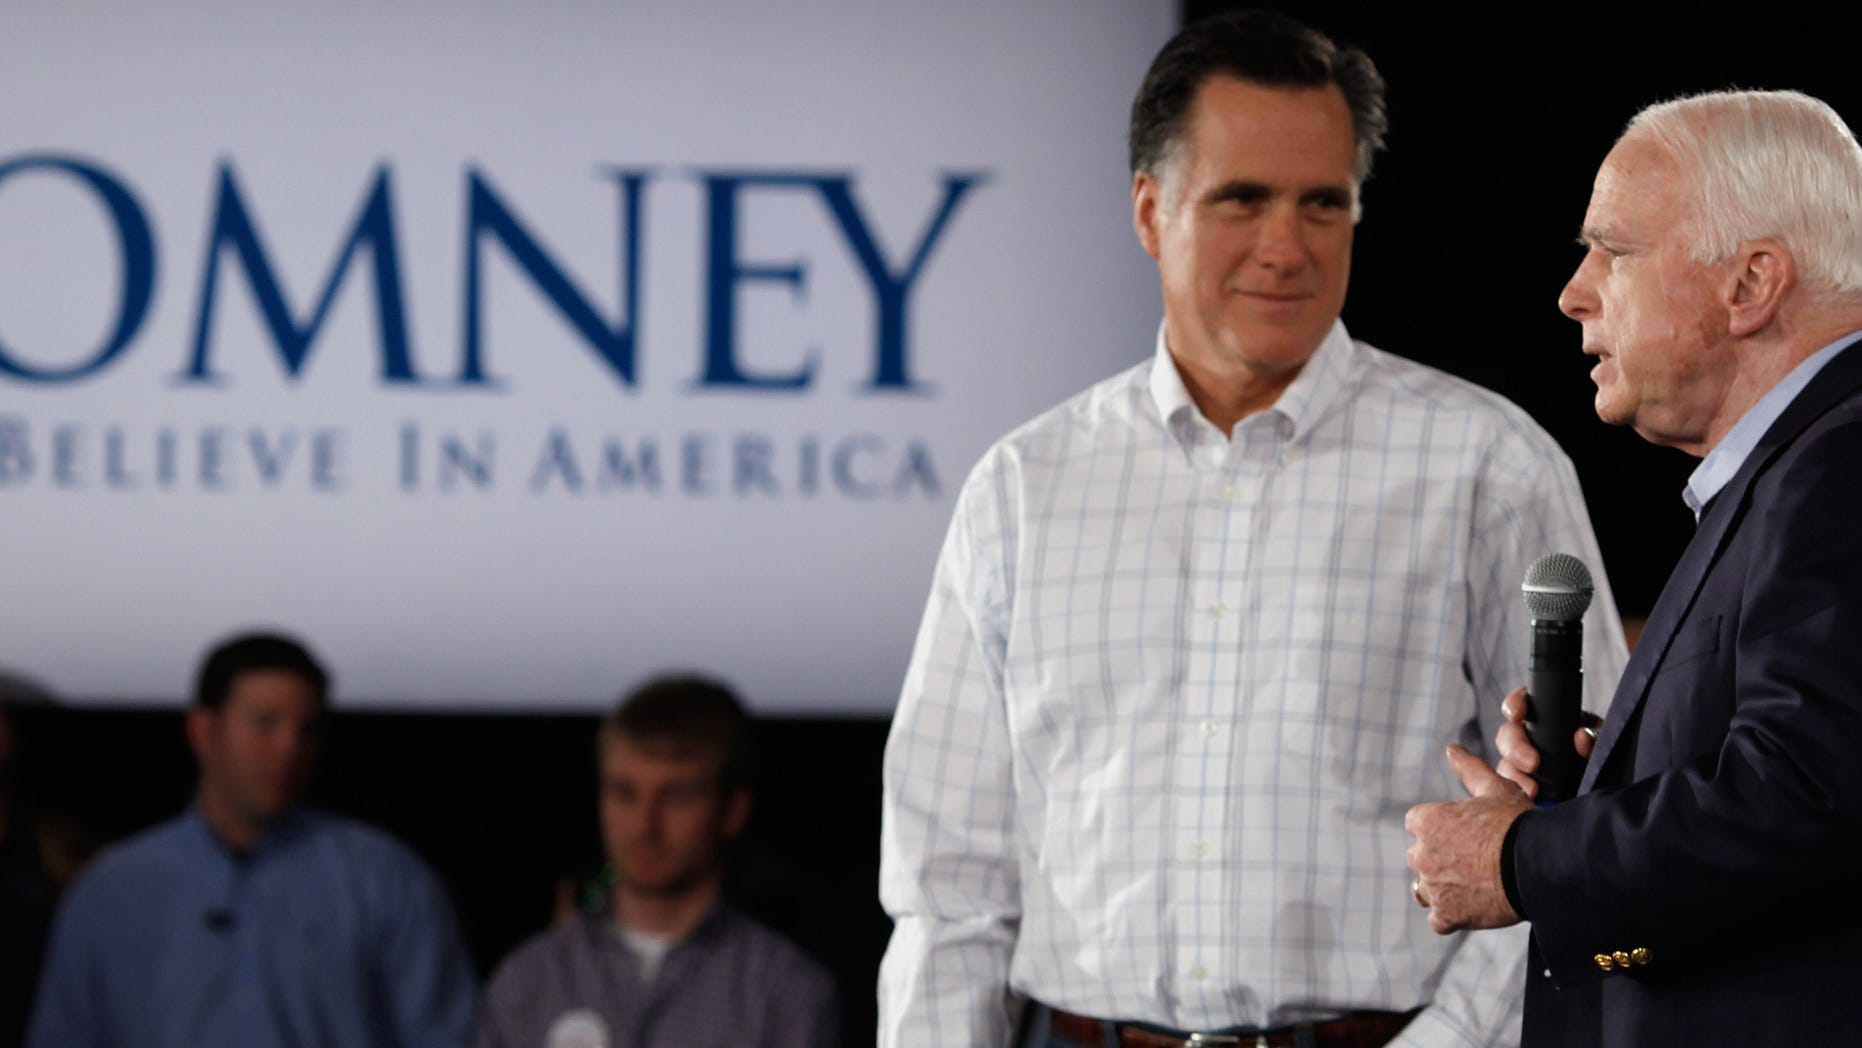 SALEM, NH - JANUARY 05:  Republican presidential candidate, former Massachusetts Governor Mitt Romney (L) and Sen. John McCain (R-AZ) hold a campaign town hall meeting at the Boys and Girls Club January 5, 2012 in Salem, New Hampshire. McCain, the GOP presidential nominee who ran against President Barack Obama in 2008, endorsed Romney on Wednesday. Romney eeked out an eight-vote victory in the Iowa Caucuses against former U.S. Senator Rick Santorum, who is also stumping in New Hampshire.  (Photo by Chip Somodevilla/Getty Images)